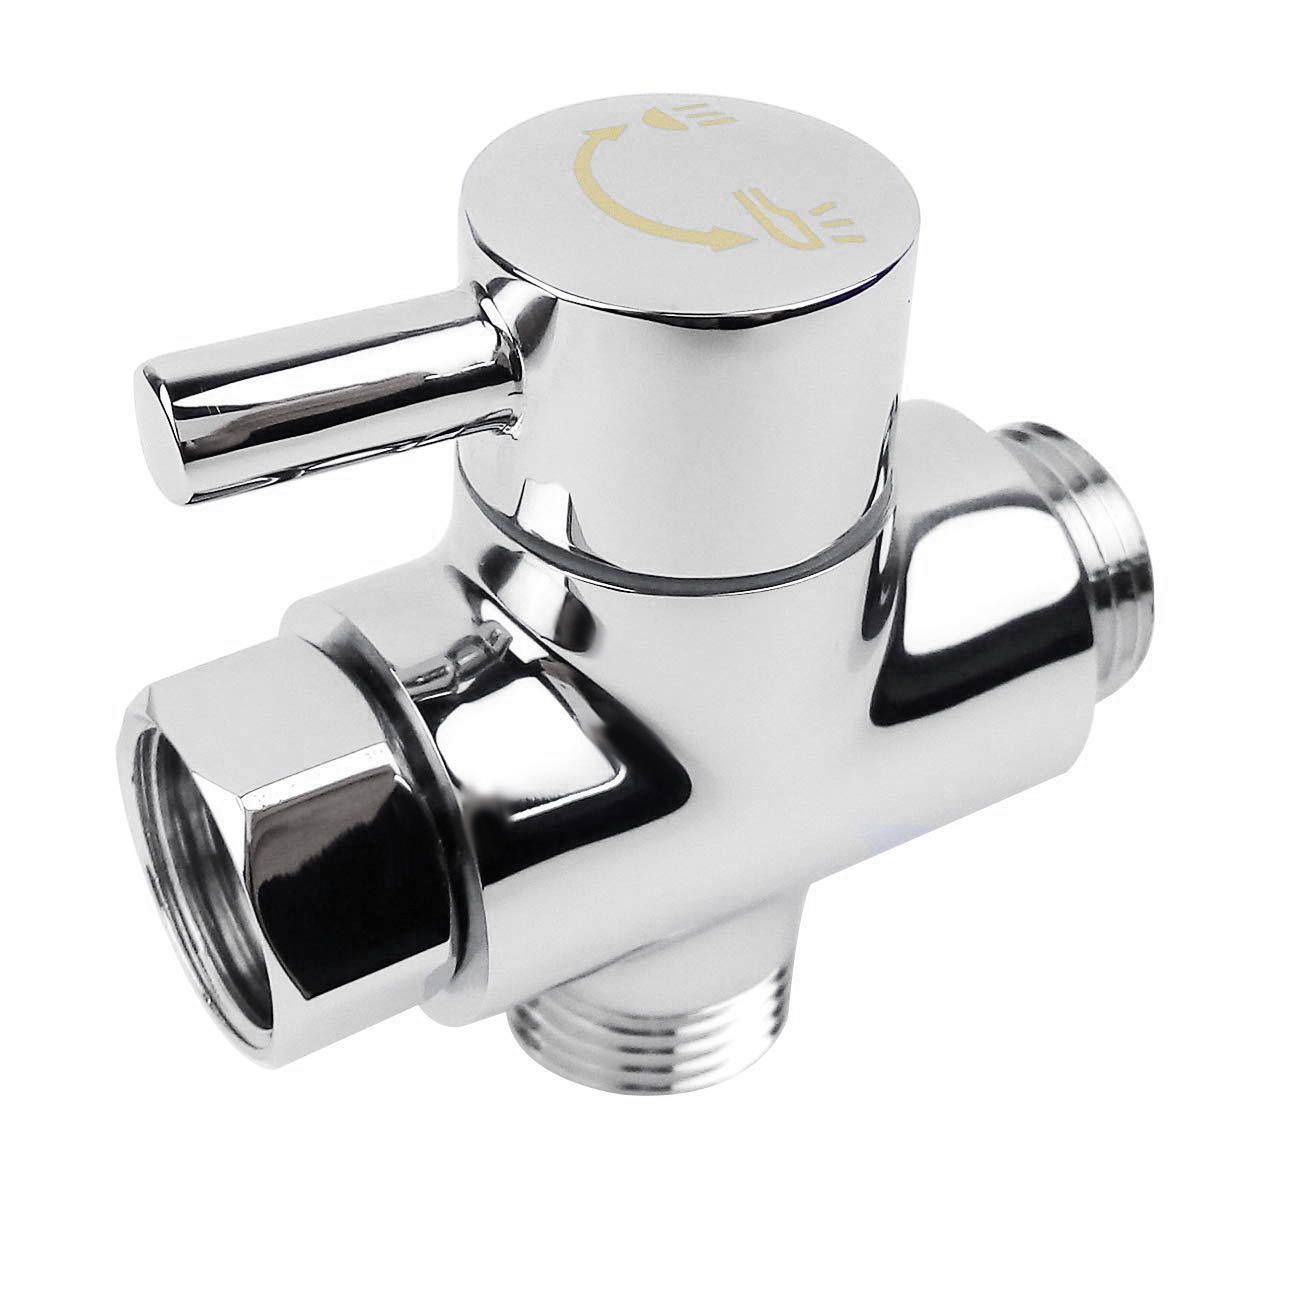 Solid Diverter Three Head Function Diverter Valve 3 Way Tee Connector All 1/2 Inch IPS Shower System Spare Part, Copper Chrome